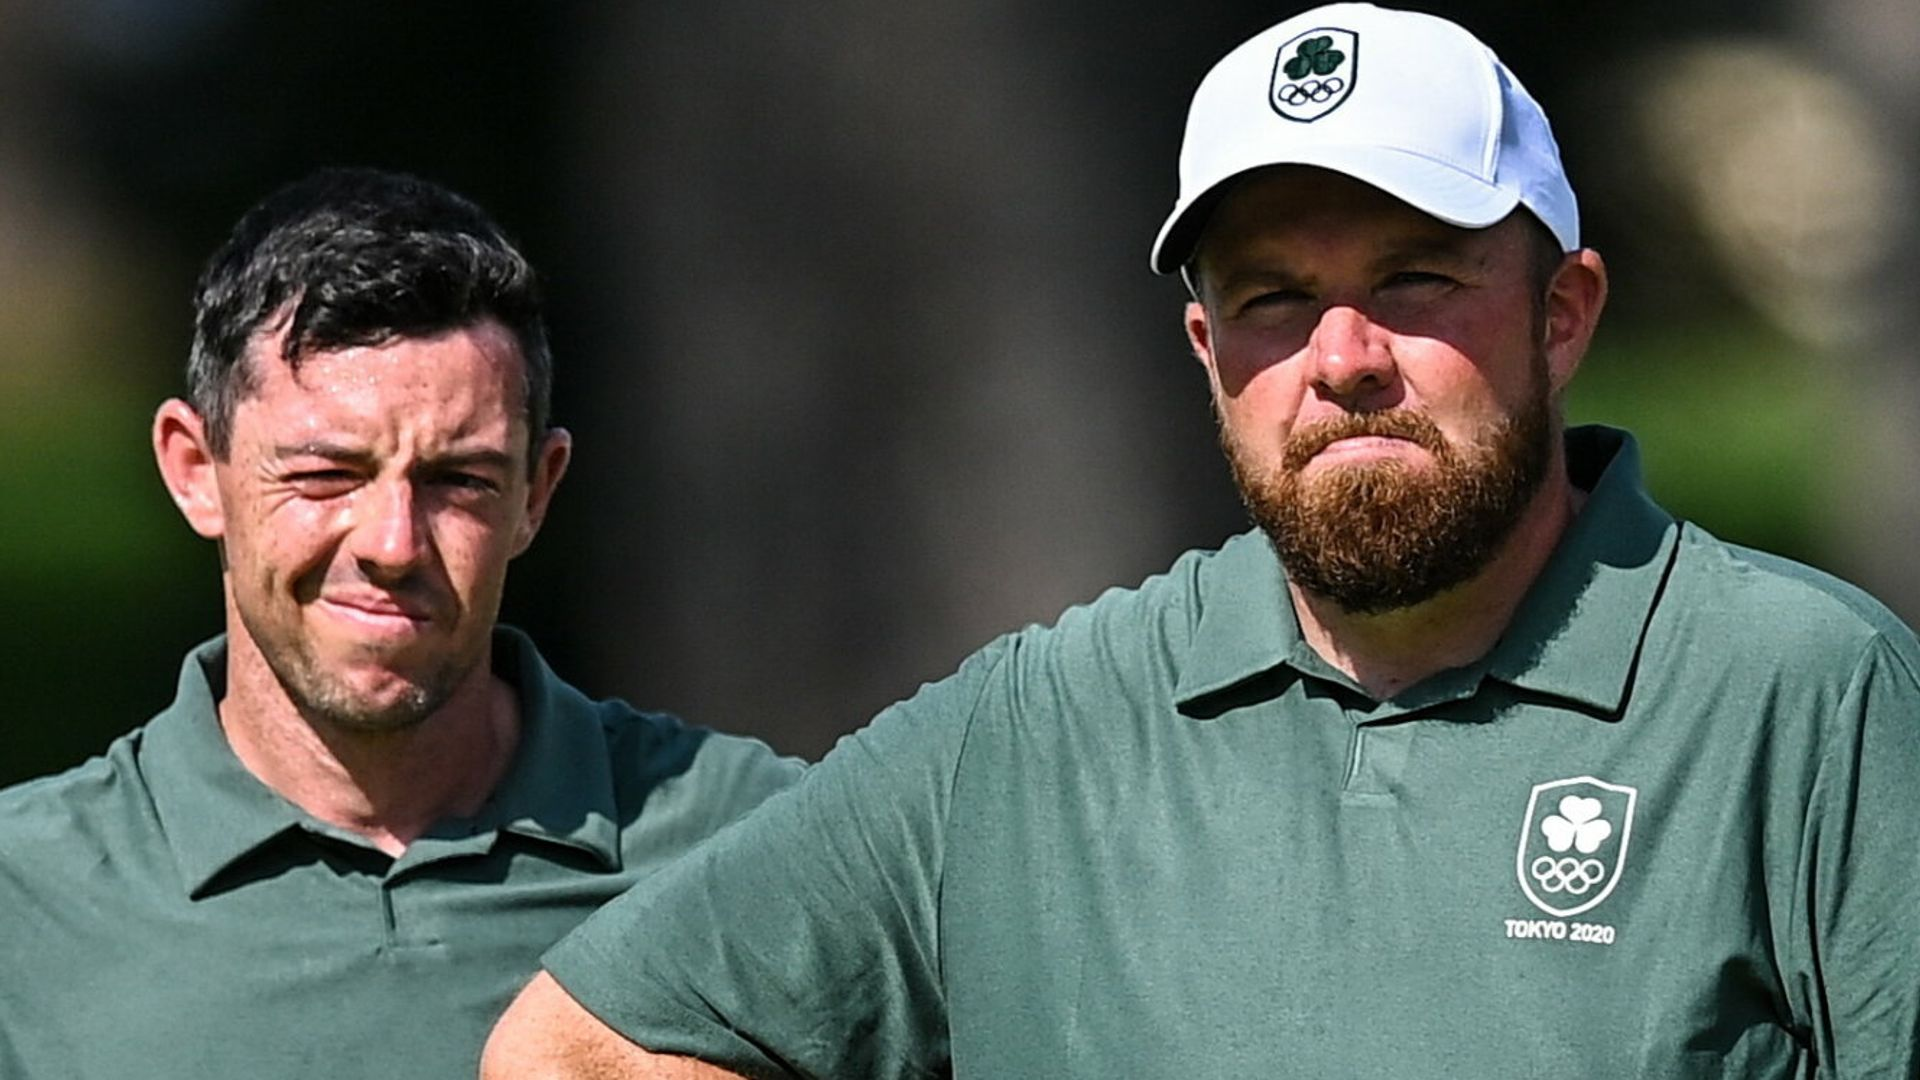 McIlroy: I've been proven wrong about Olympics